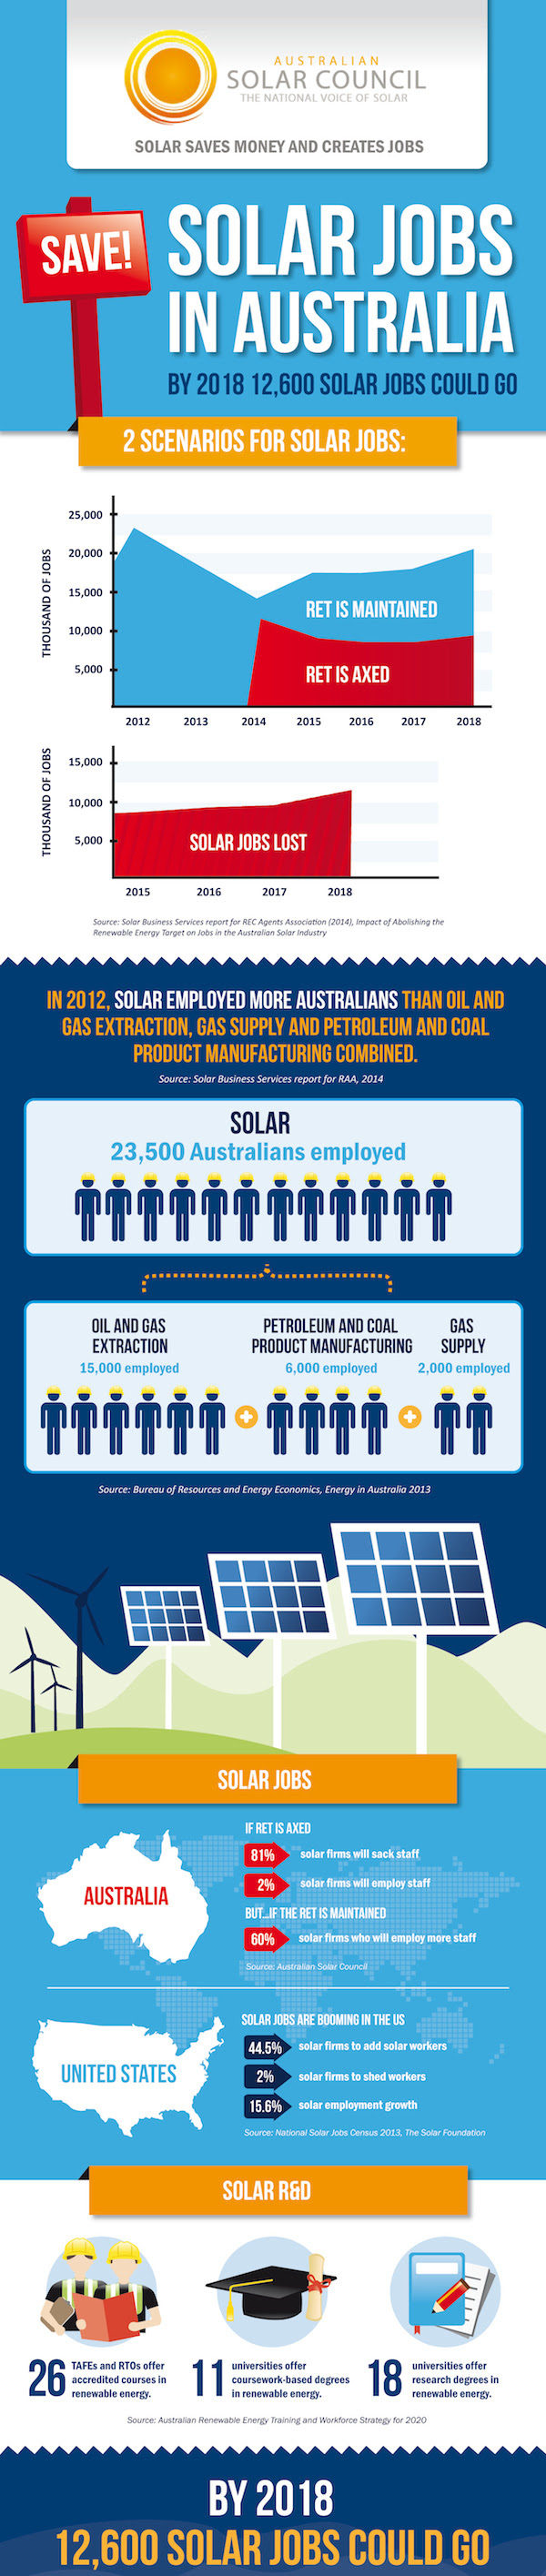 Urgent Call to Save Solar Jobs in Australia from the Australian Solar Council